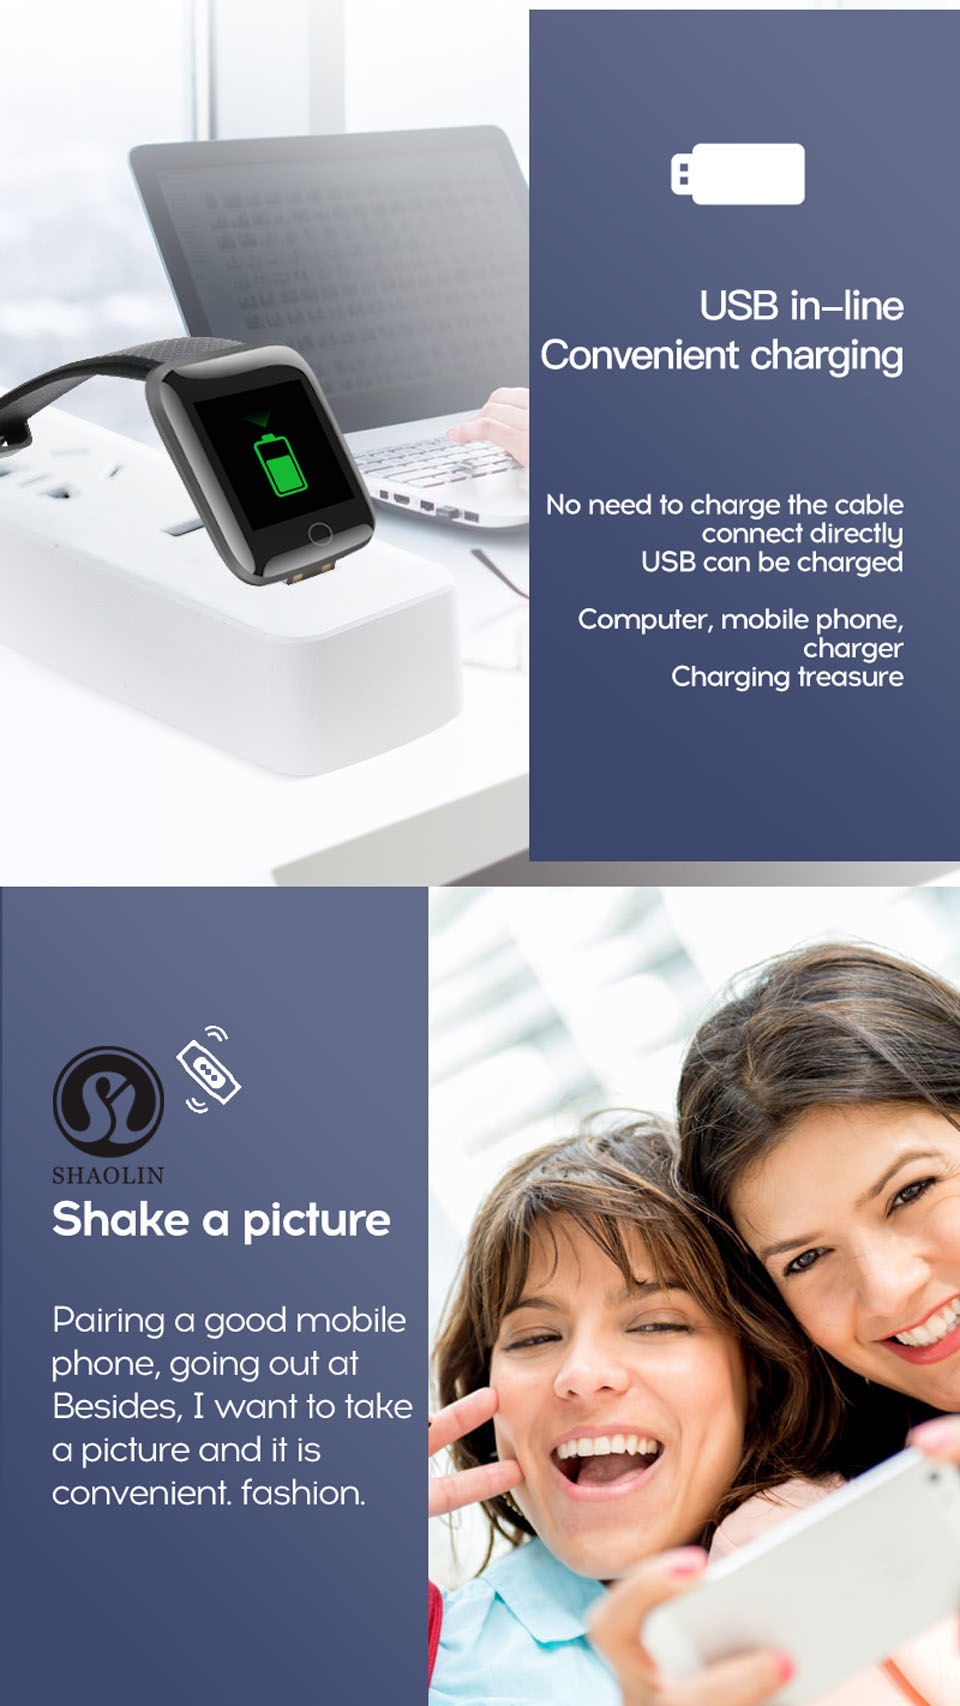 11 USB in-line Convenient Charging + Shake a picture